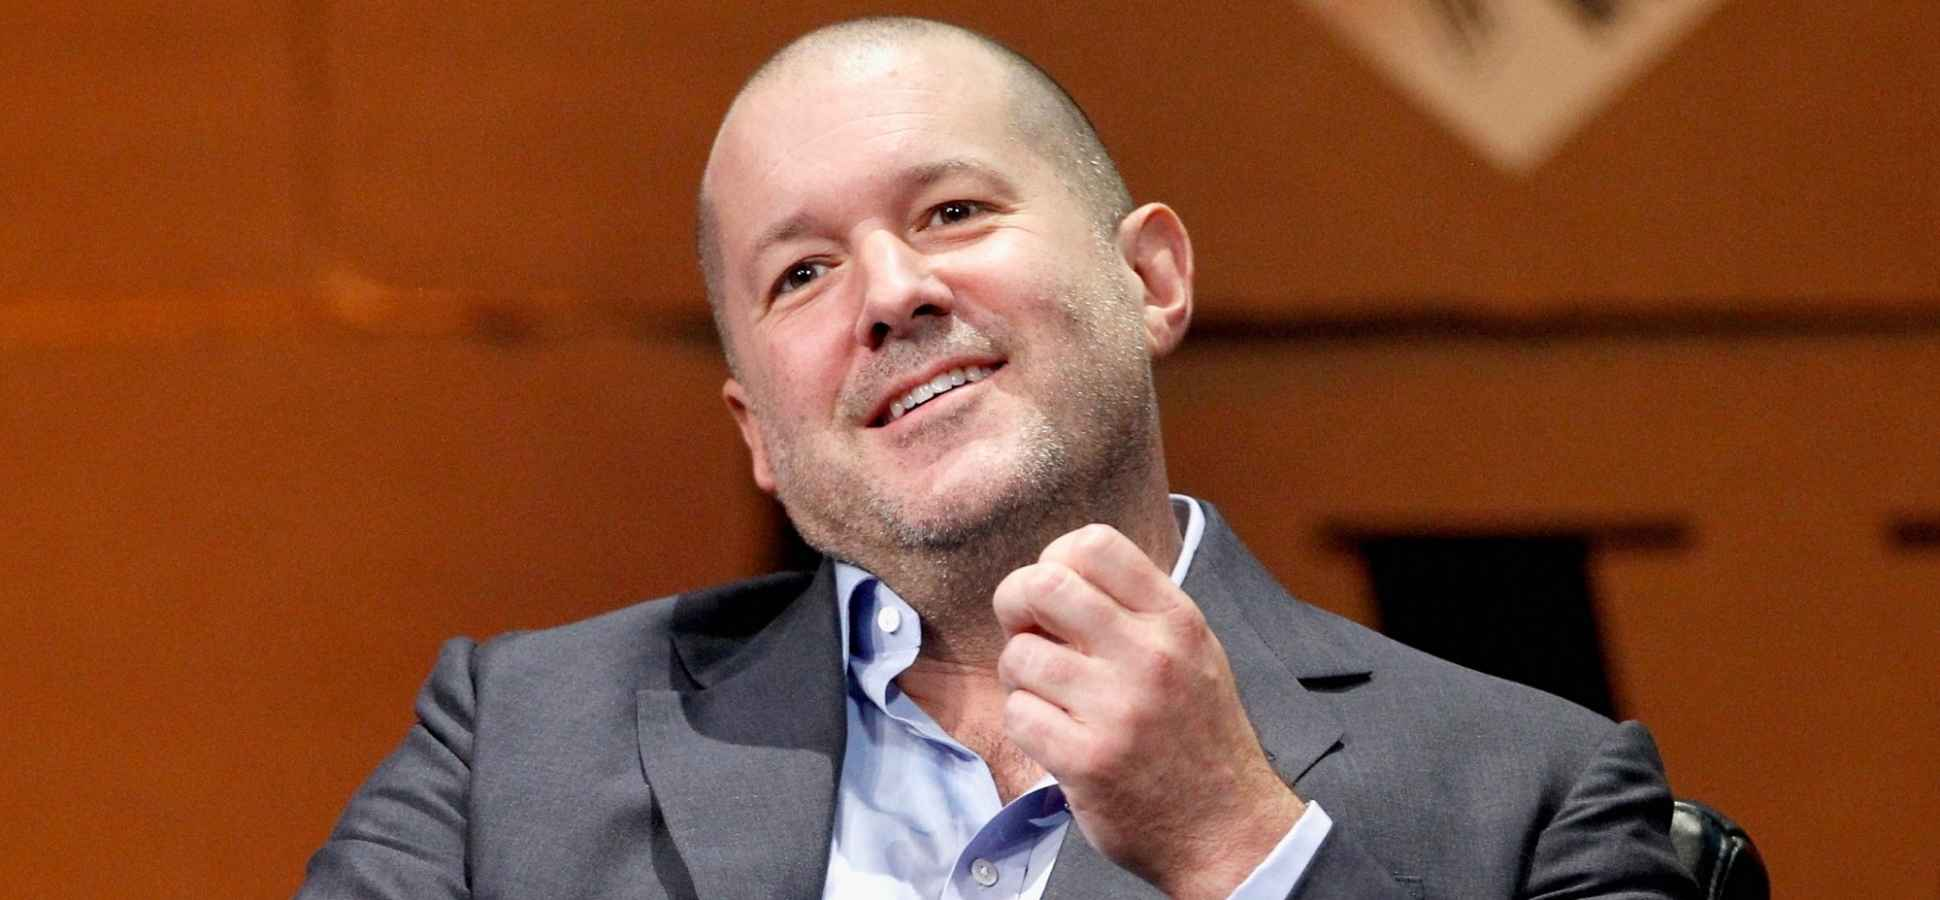 The Question That Steve Jobs Used to Ask Jony Ive Every Day